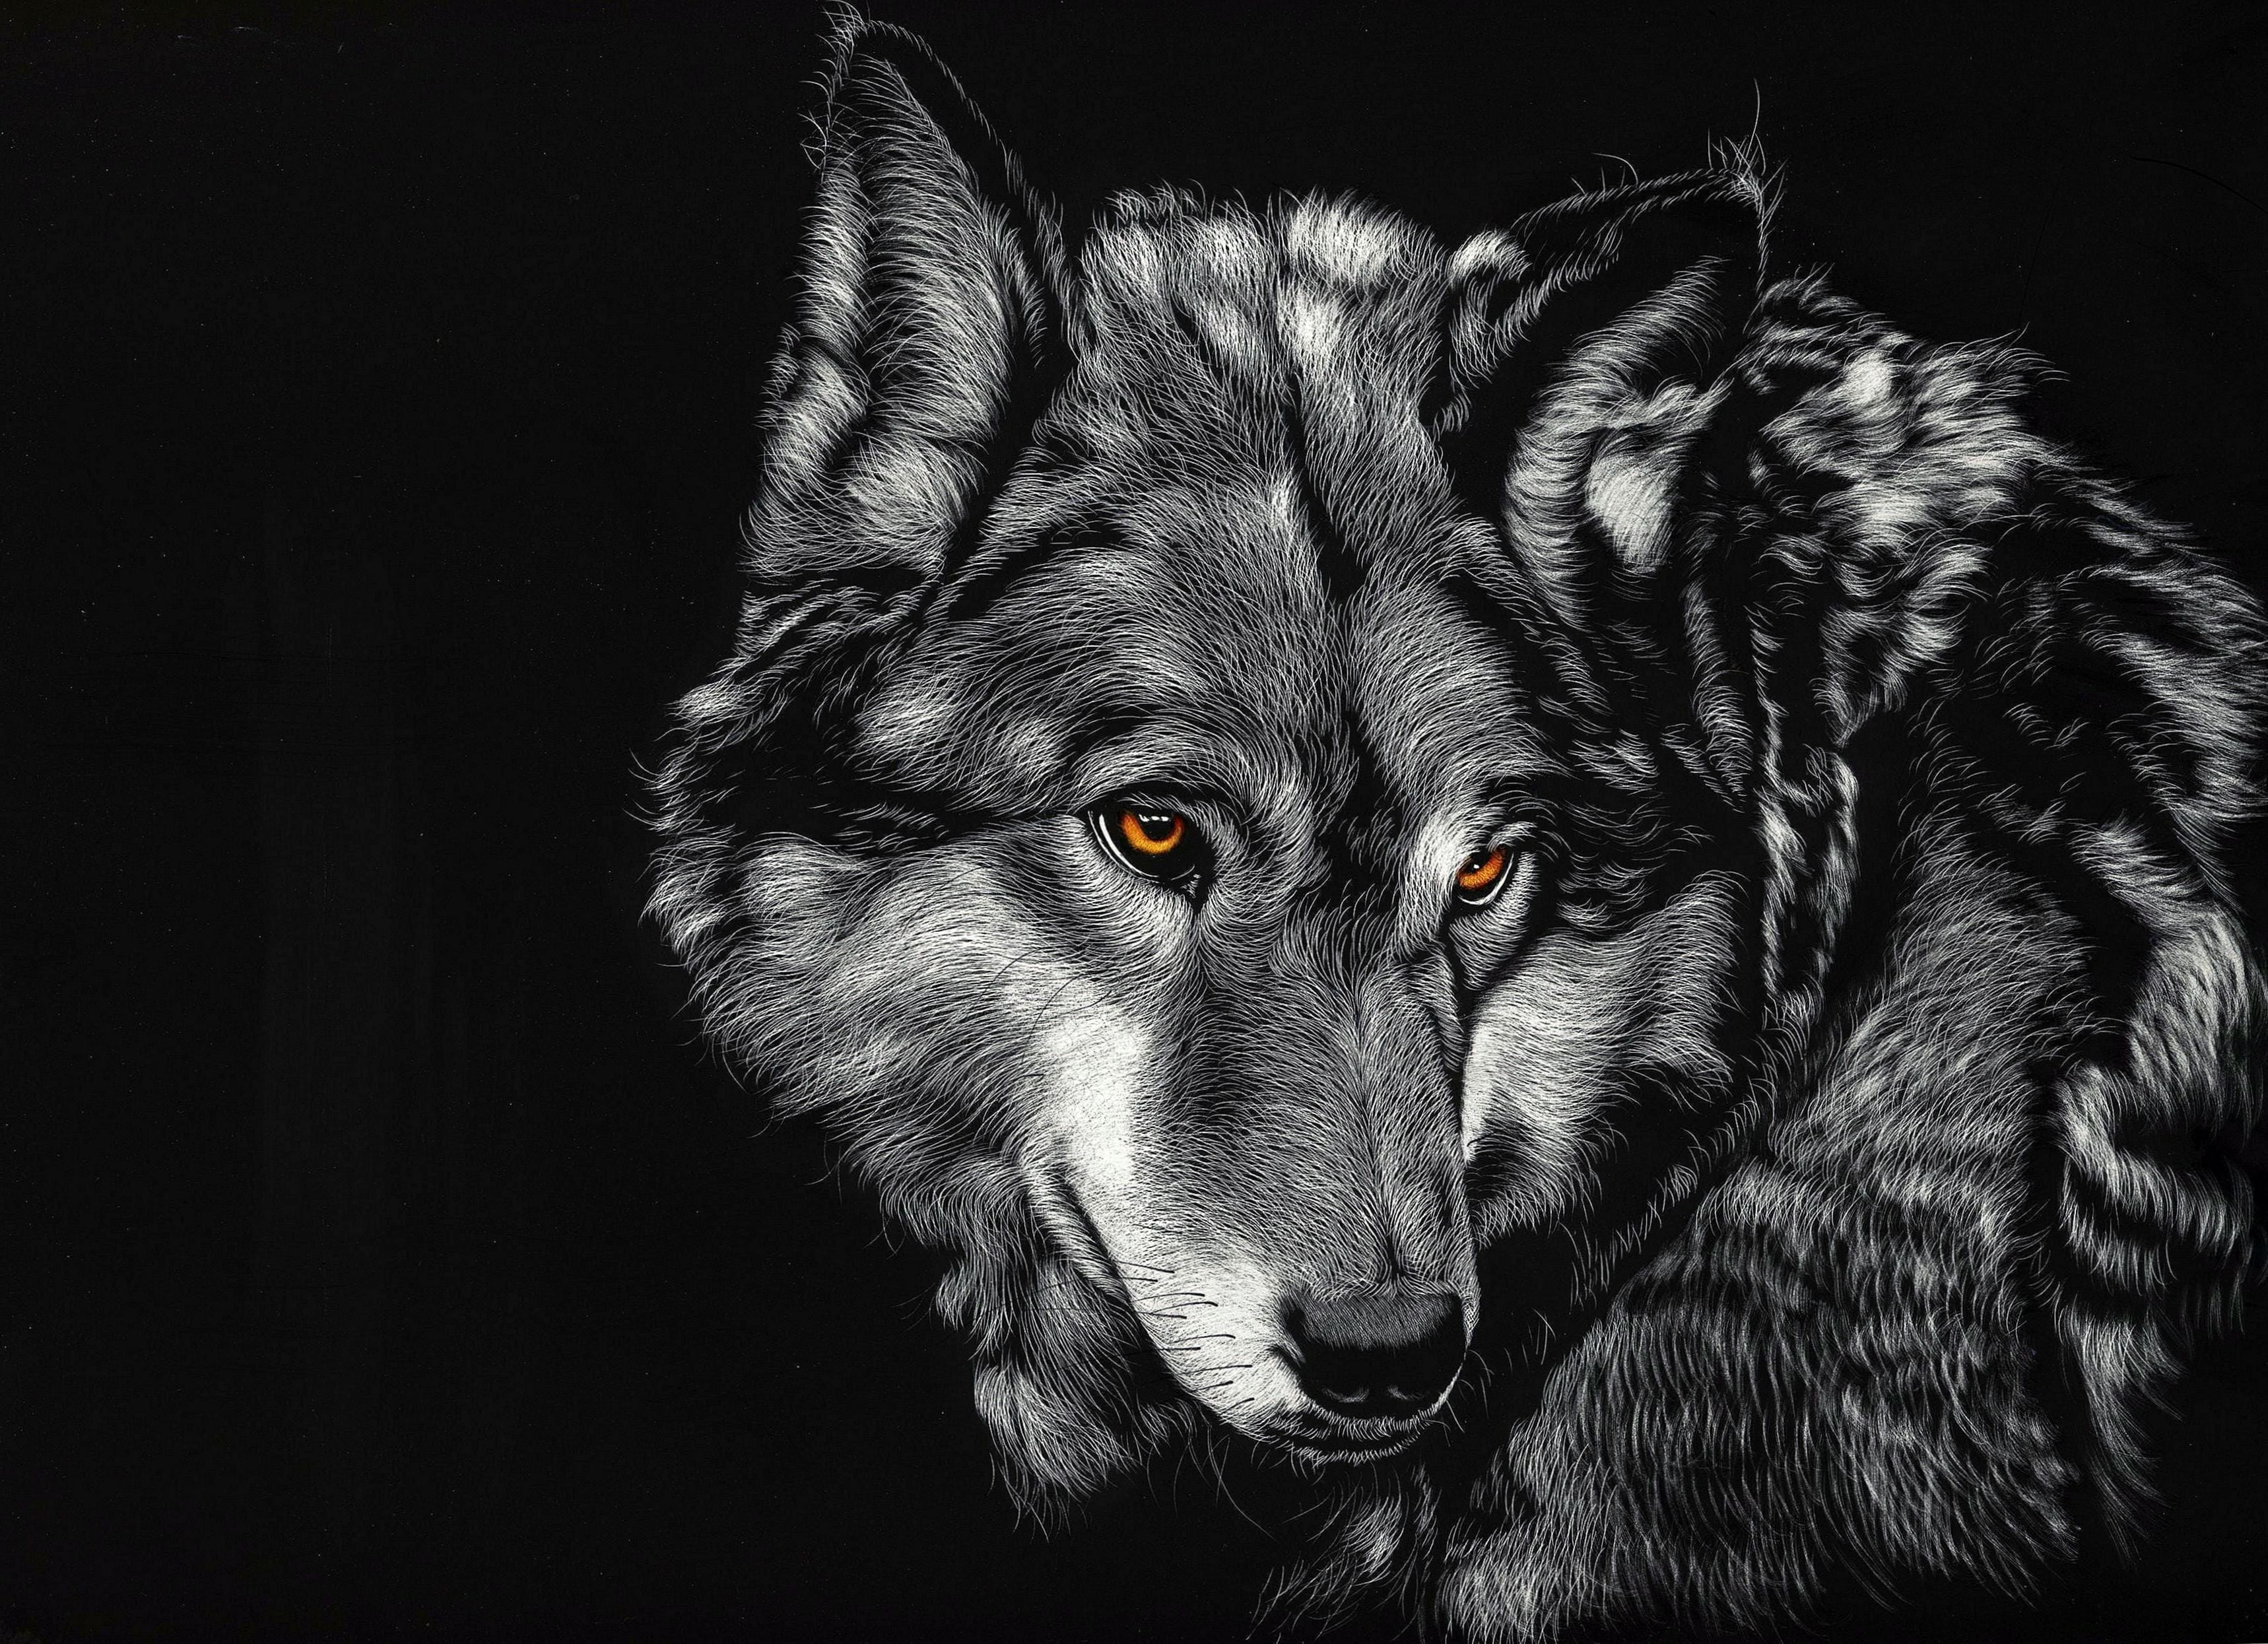 Wallpapers Wolf 4k In 2020 Wolf Wallpaper Wolf Background Black Wolf